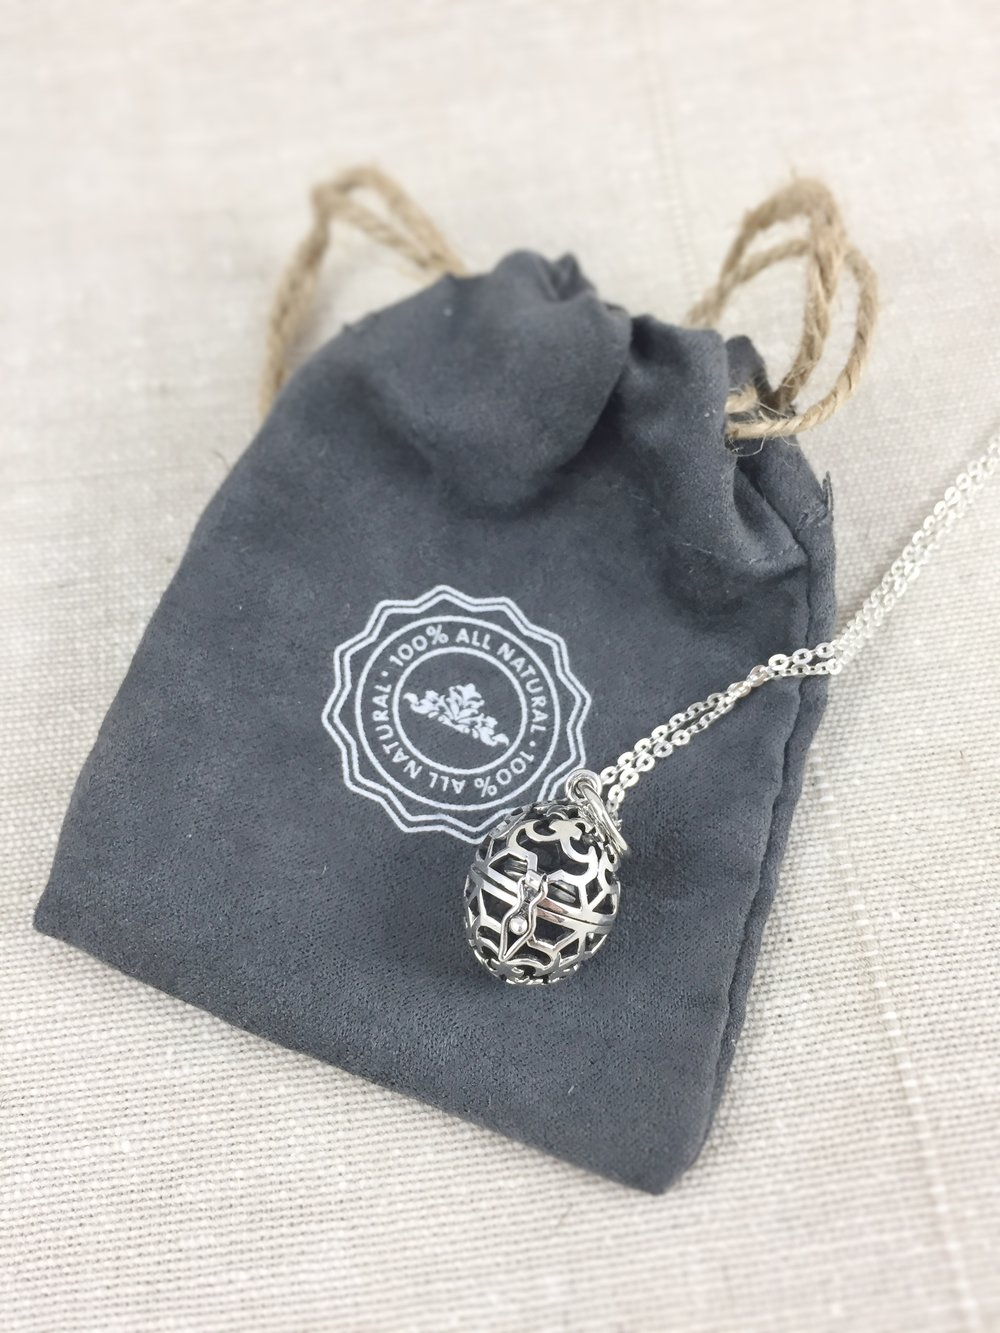 Essential Oil Necklace - A Pretty Way to Diffuse Oils